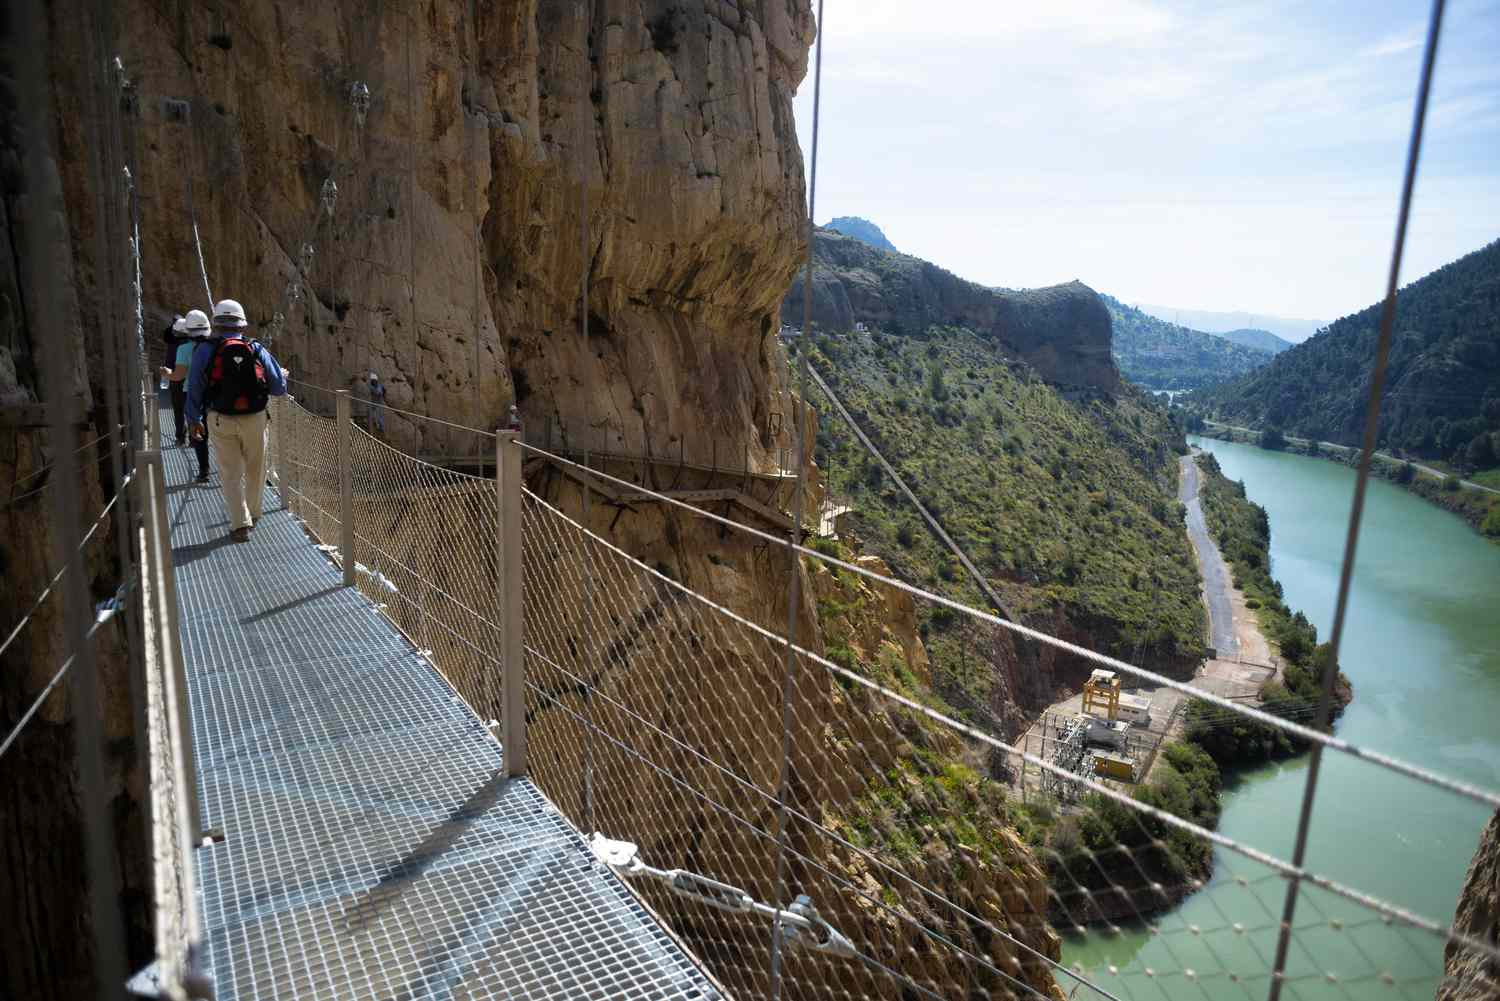 People walking on the Caminito del Rey in Malaga, Spain